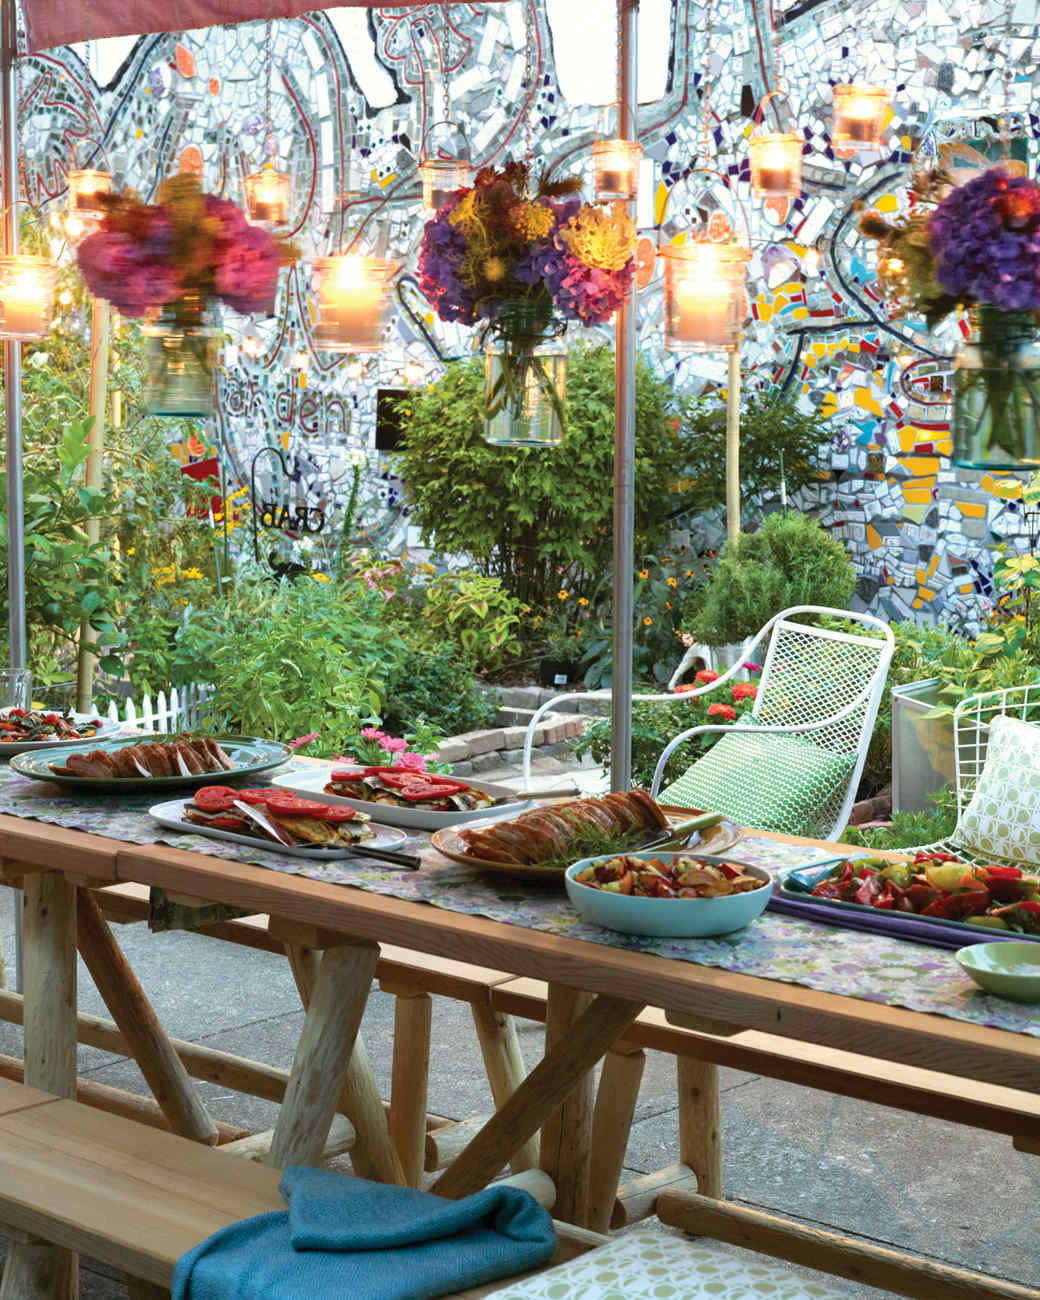 This Community Garden Potluck Party Will Inspire You | Martha Stewart